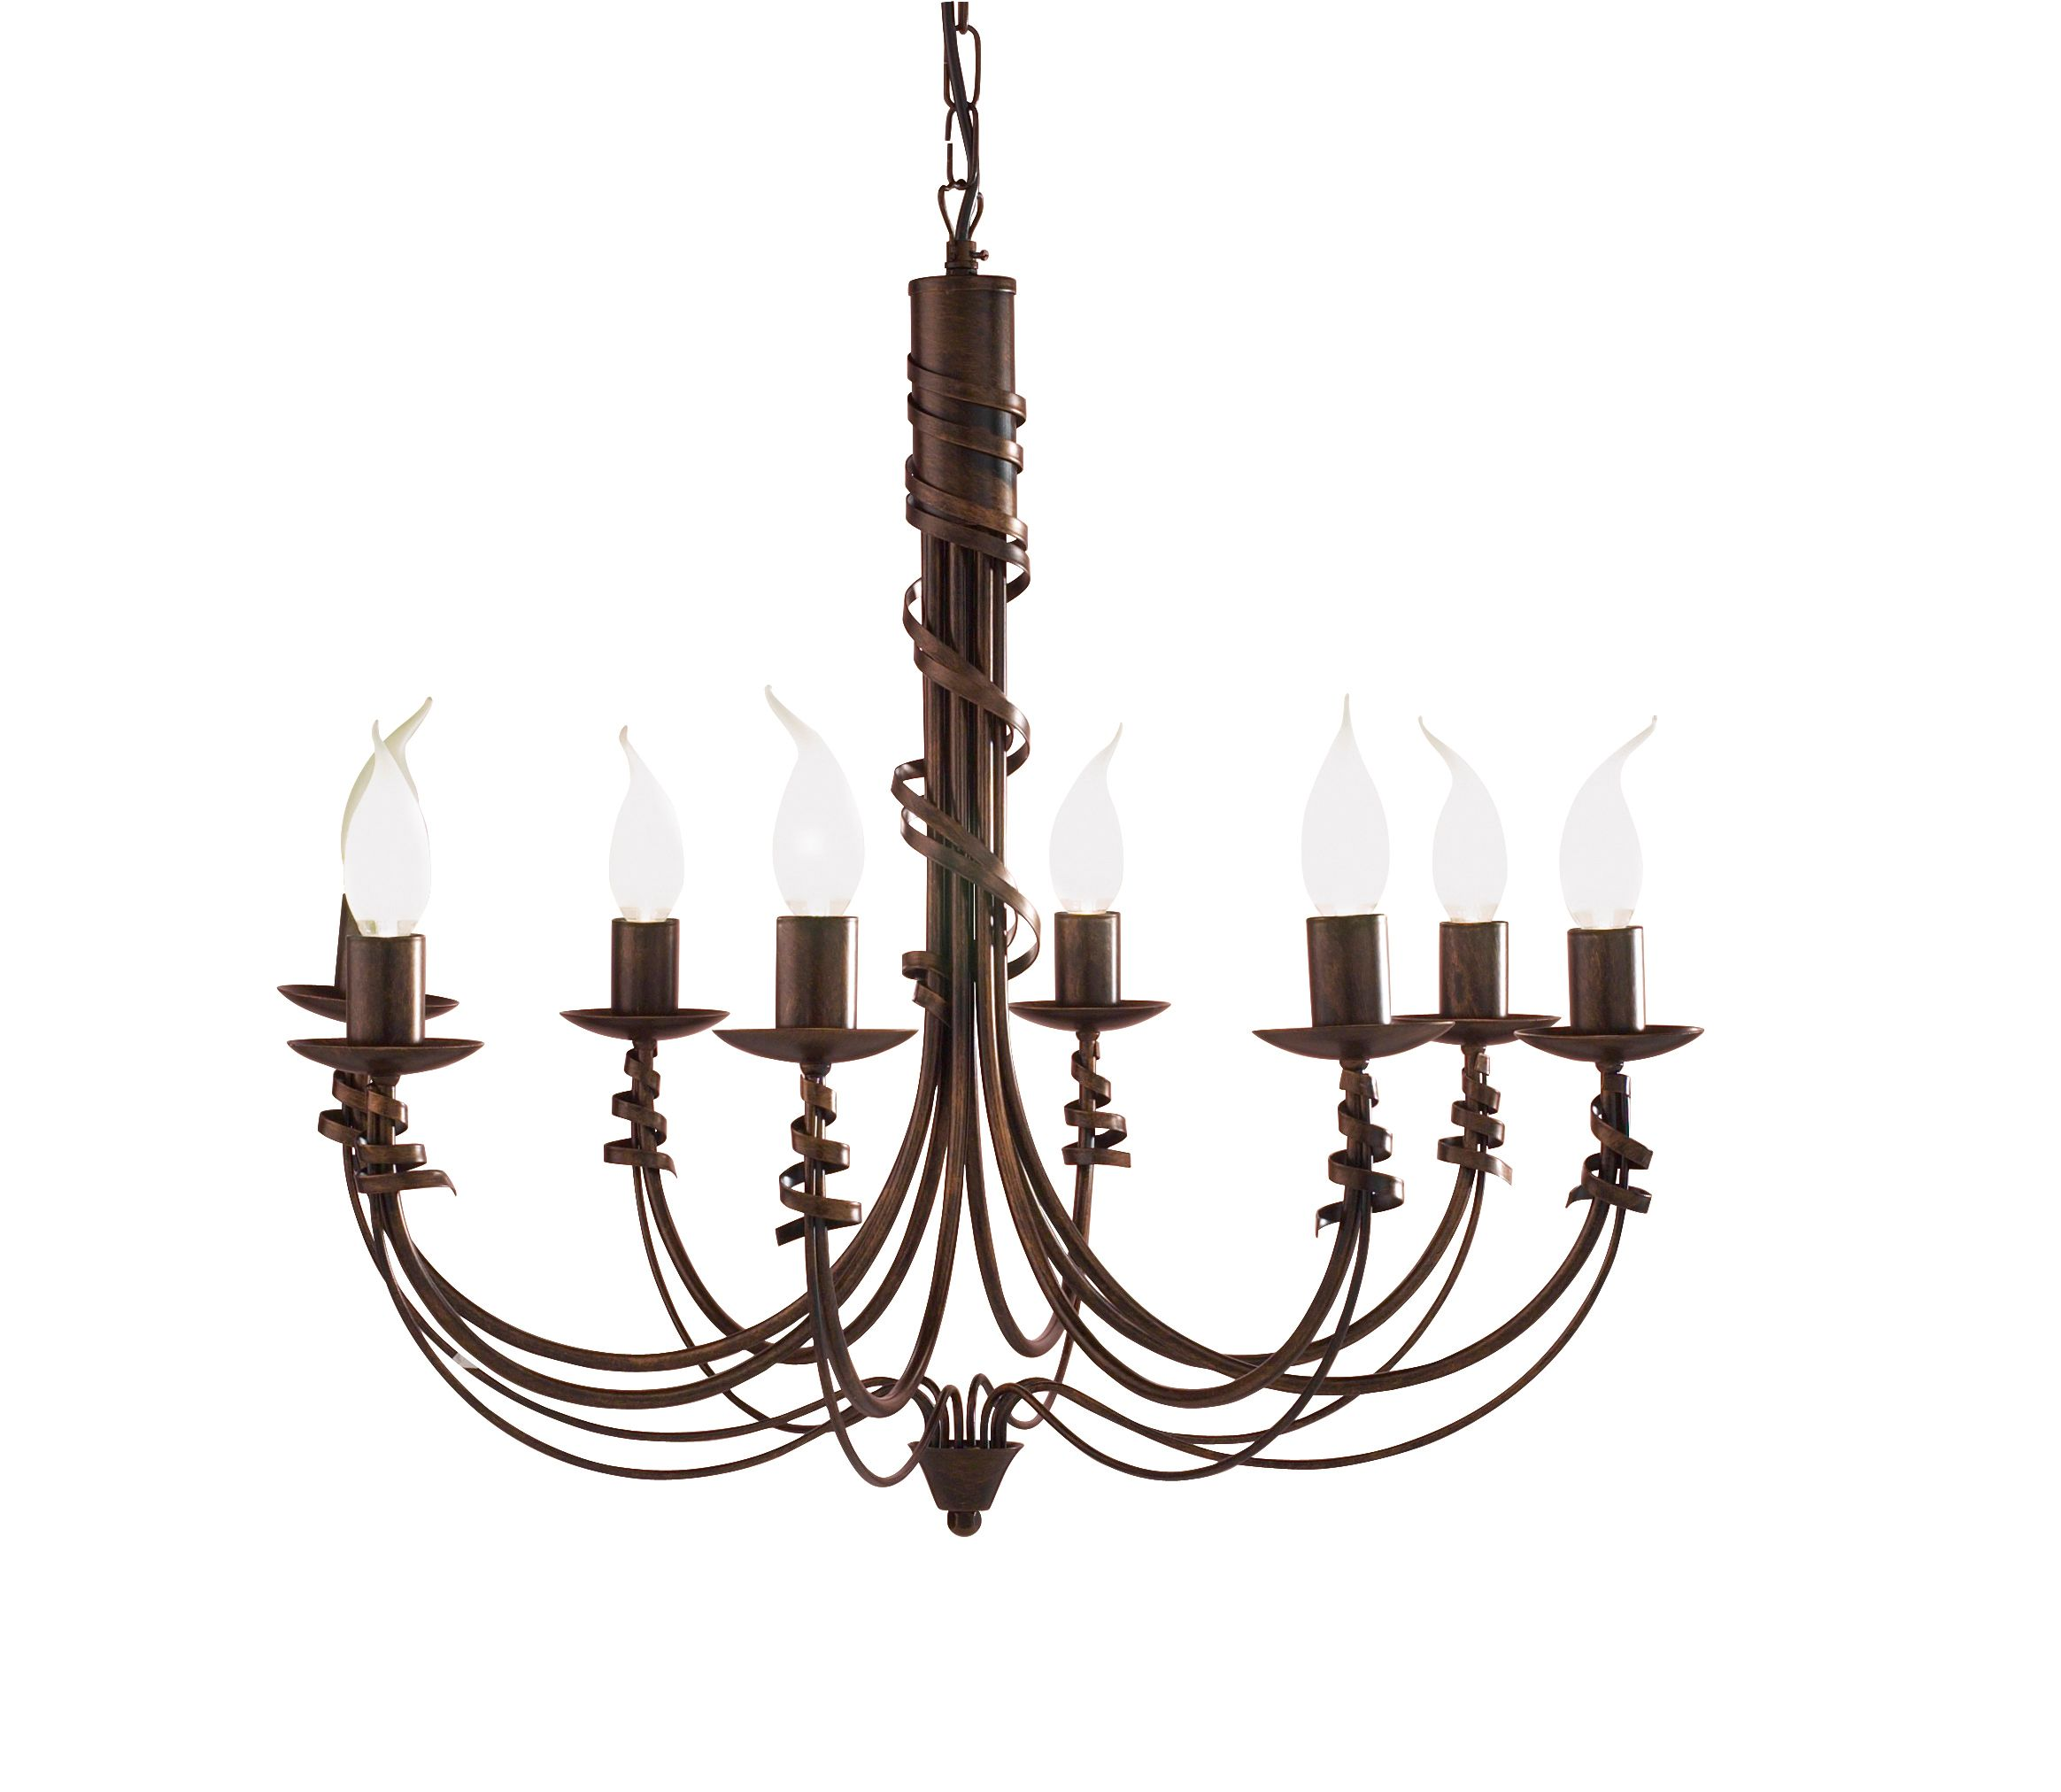 Ceiling Lights House Of Fraser : House of fraser aron arm ceiling light review compare